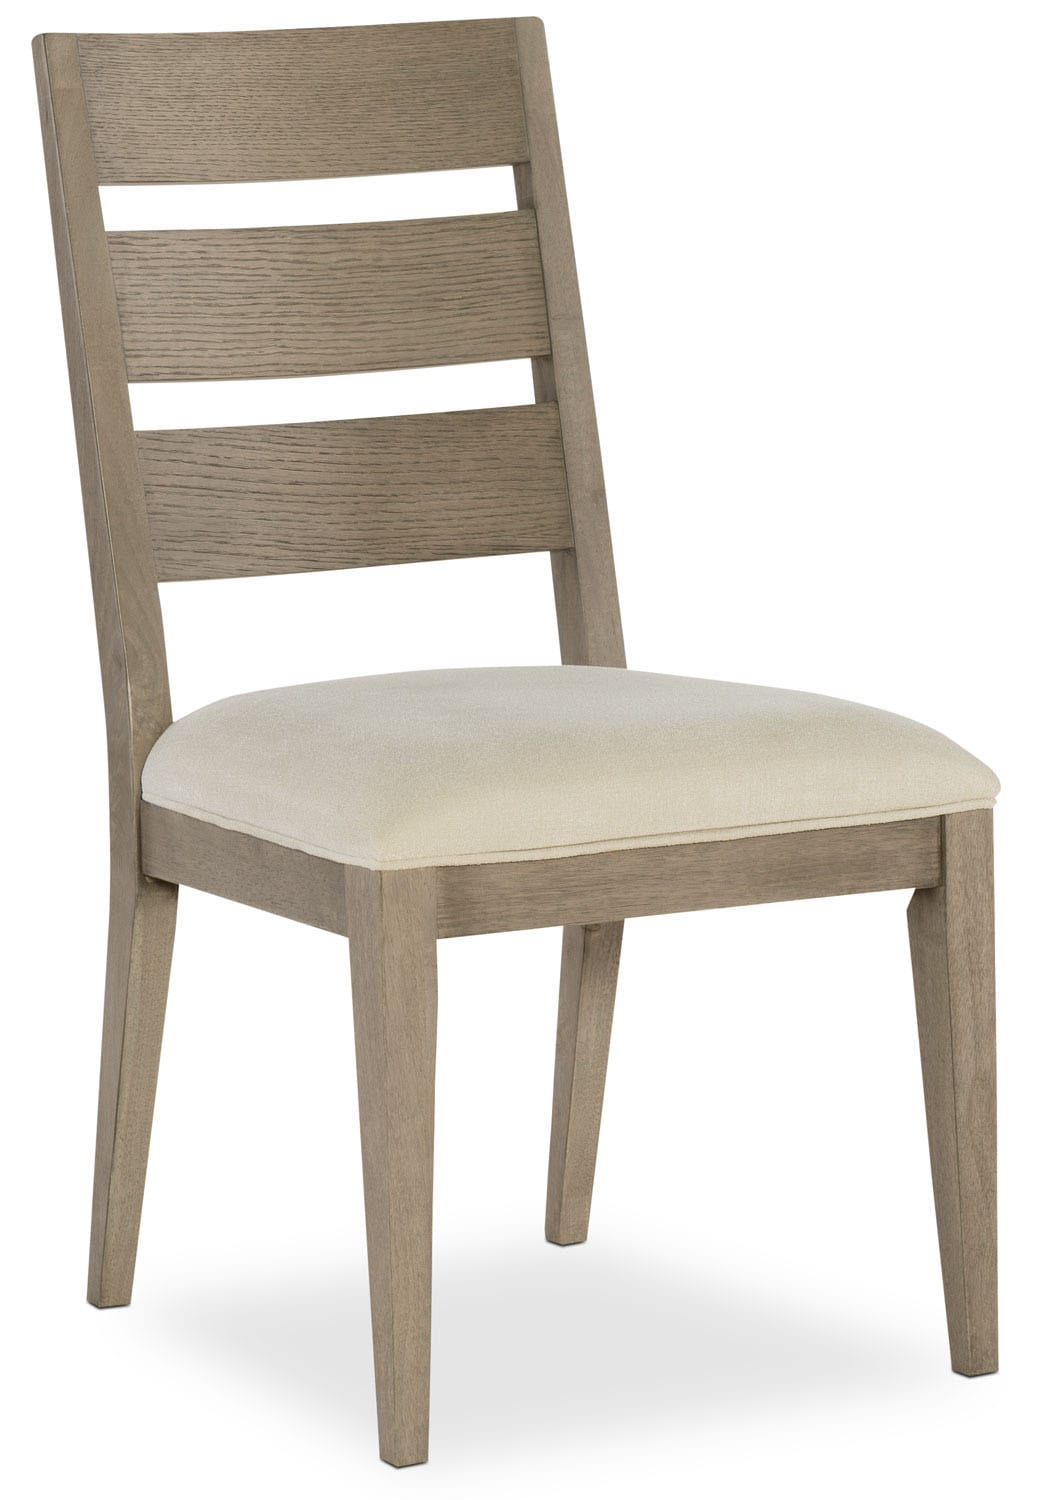 Bedroom Furniture - Rachael Ray Highline Side Chair - Greige